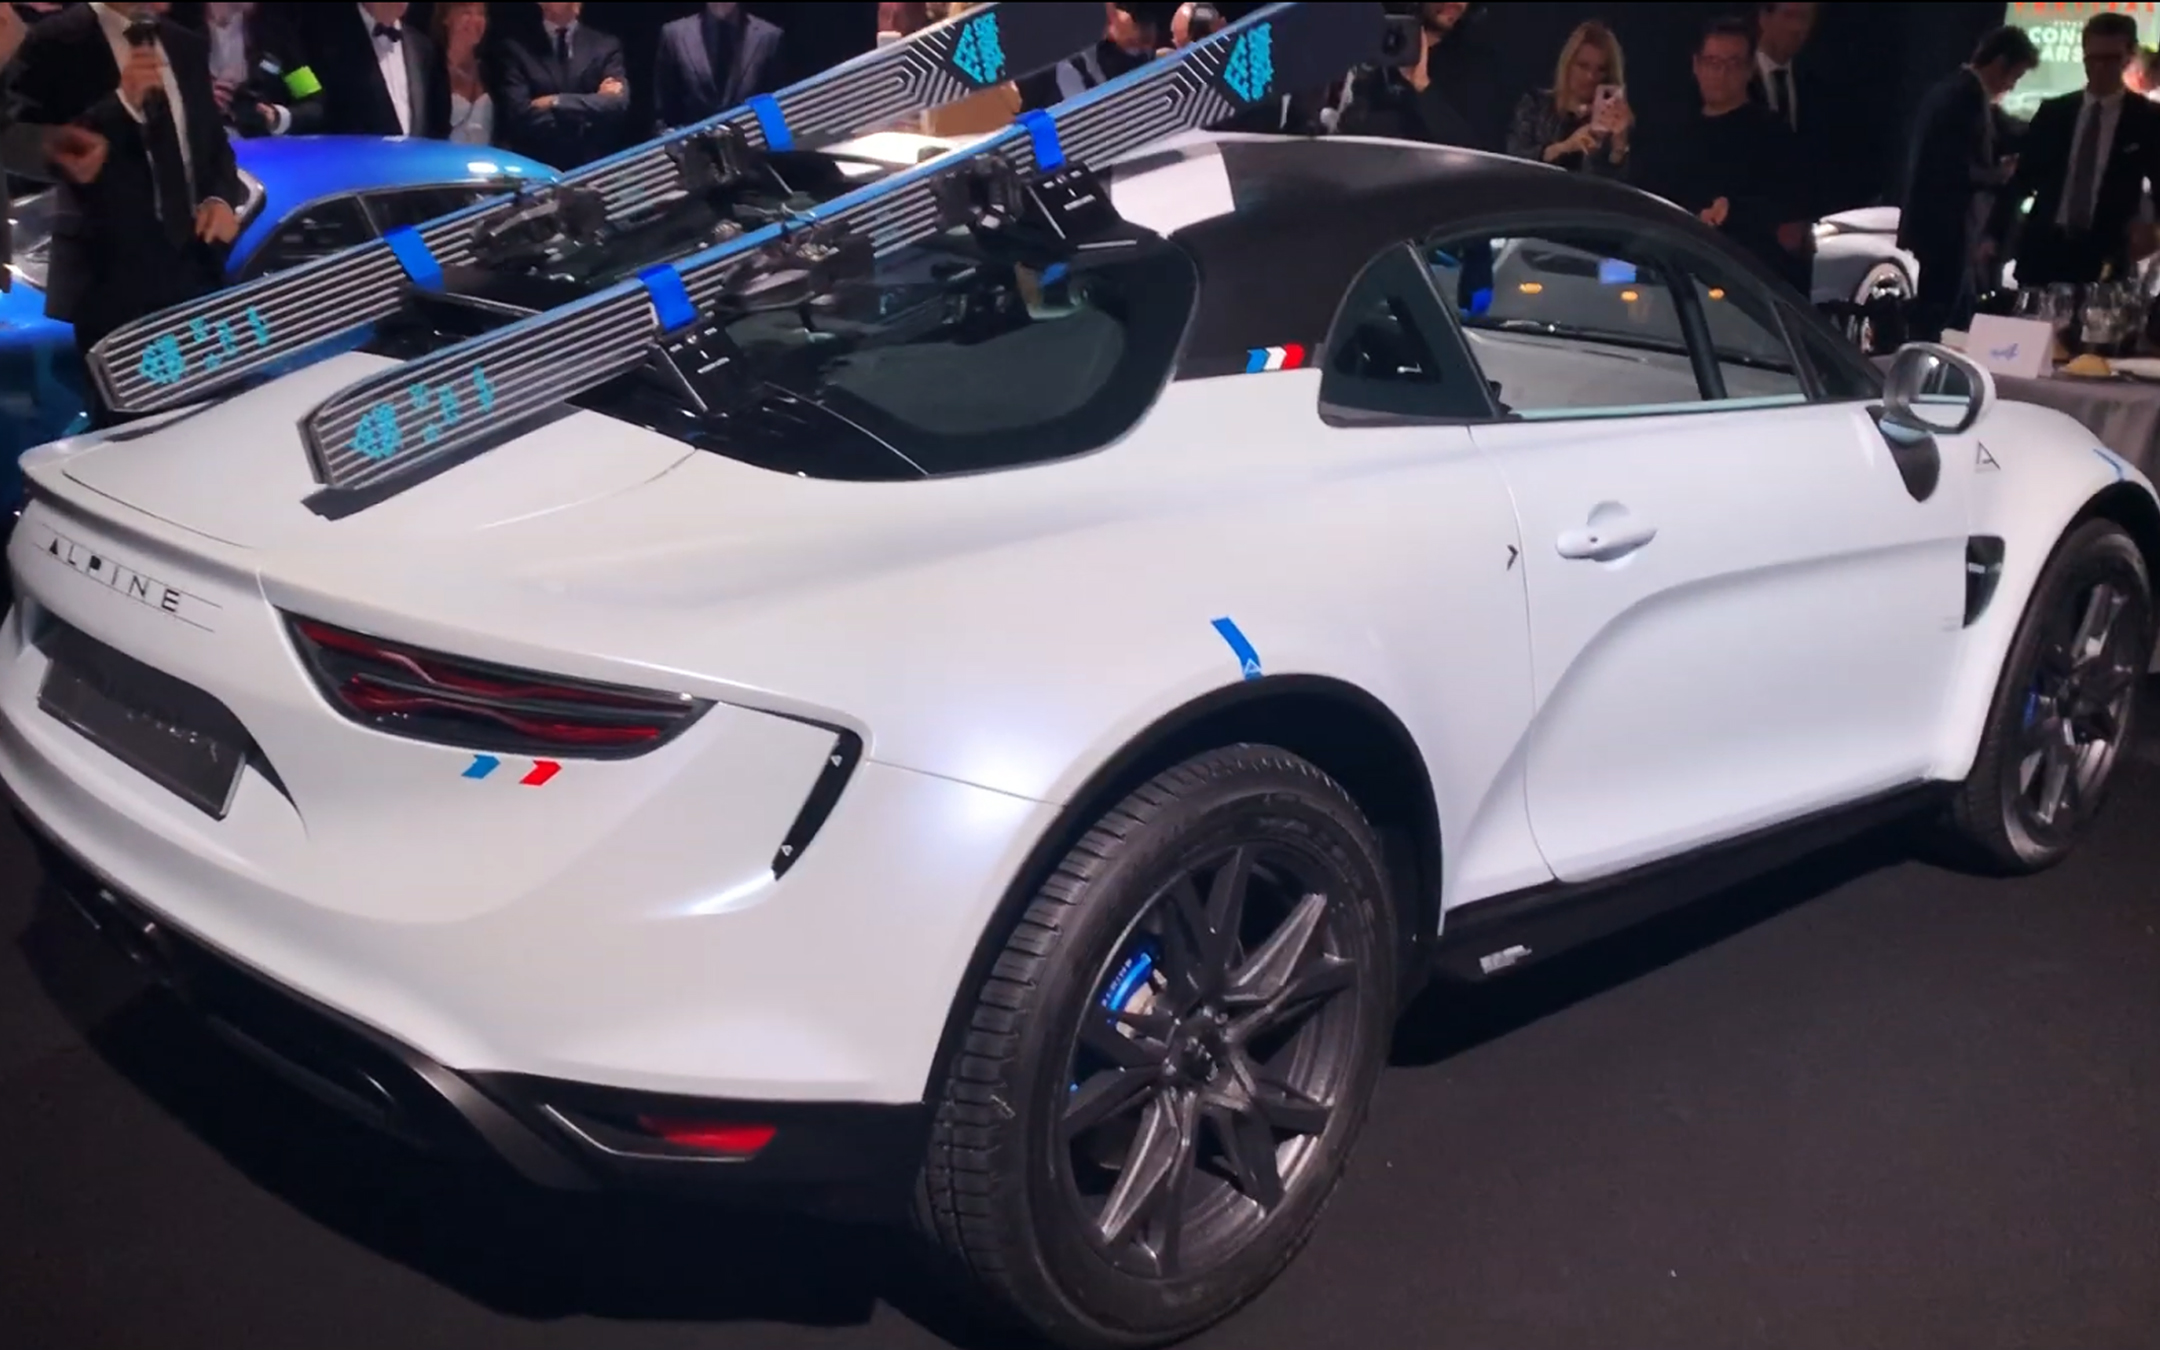 Alpine A110 Sports X - 2020 - rear side-face / profil arrière - preview - showcar - photo screen video - FAI2020